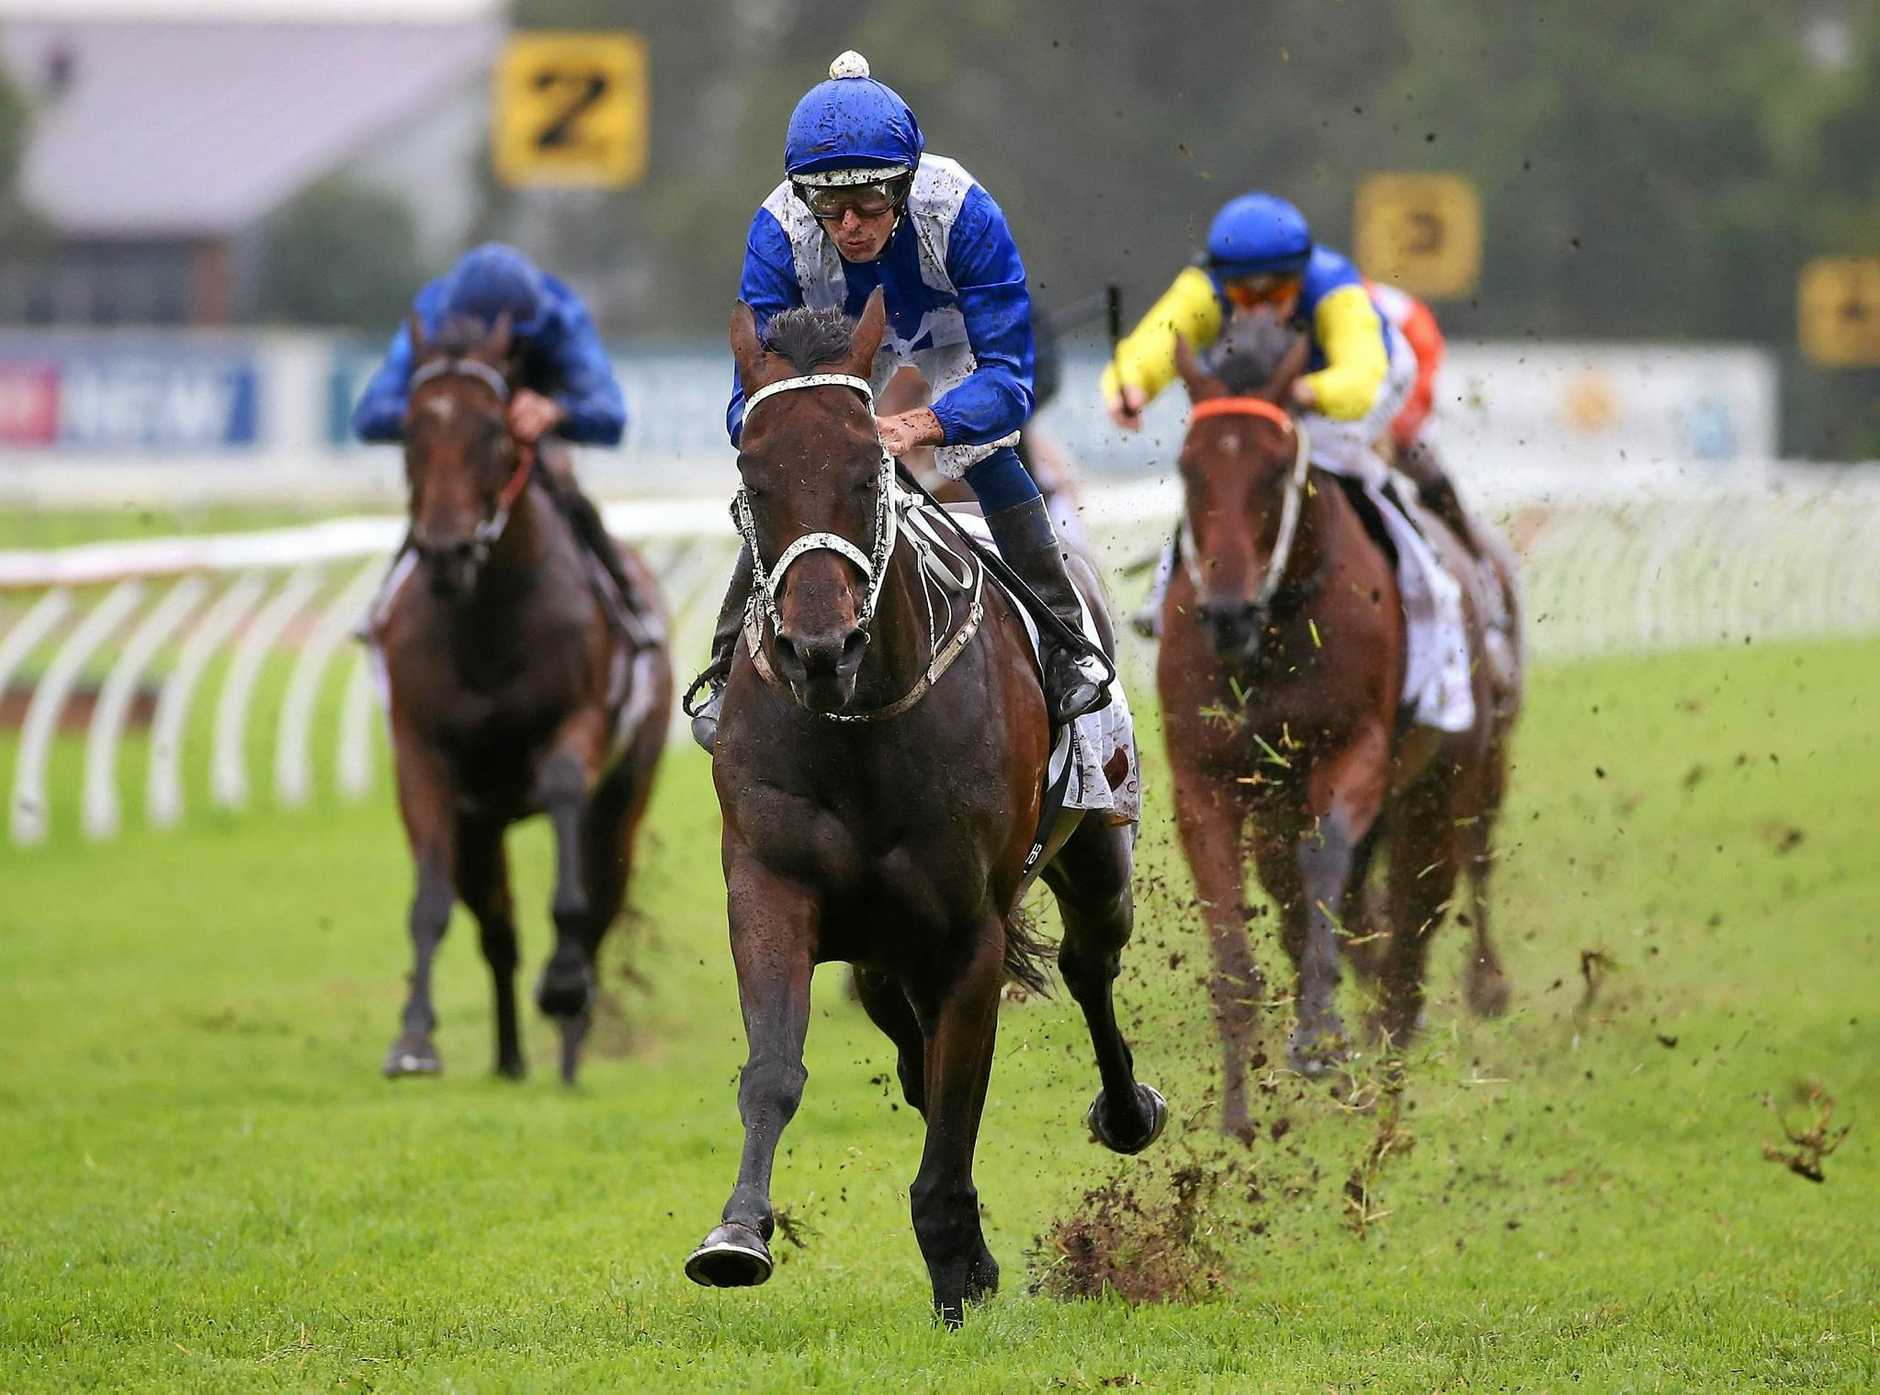 Winx (centre), ridden by Hugh Bowman, wins the China Horse Club George Ryder Stakes during Golden Slipper Day at Rosehill in Sydney last month.